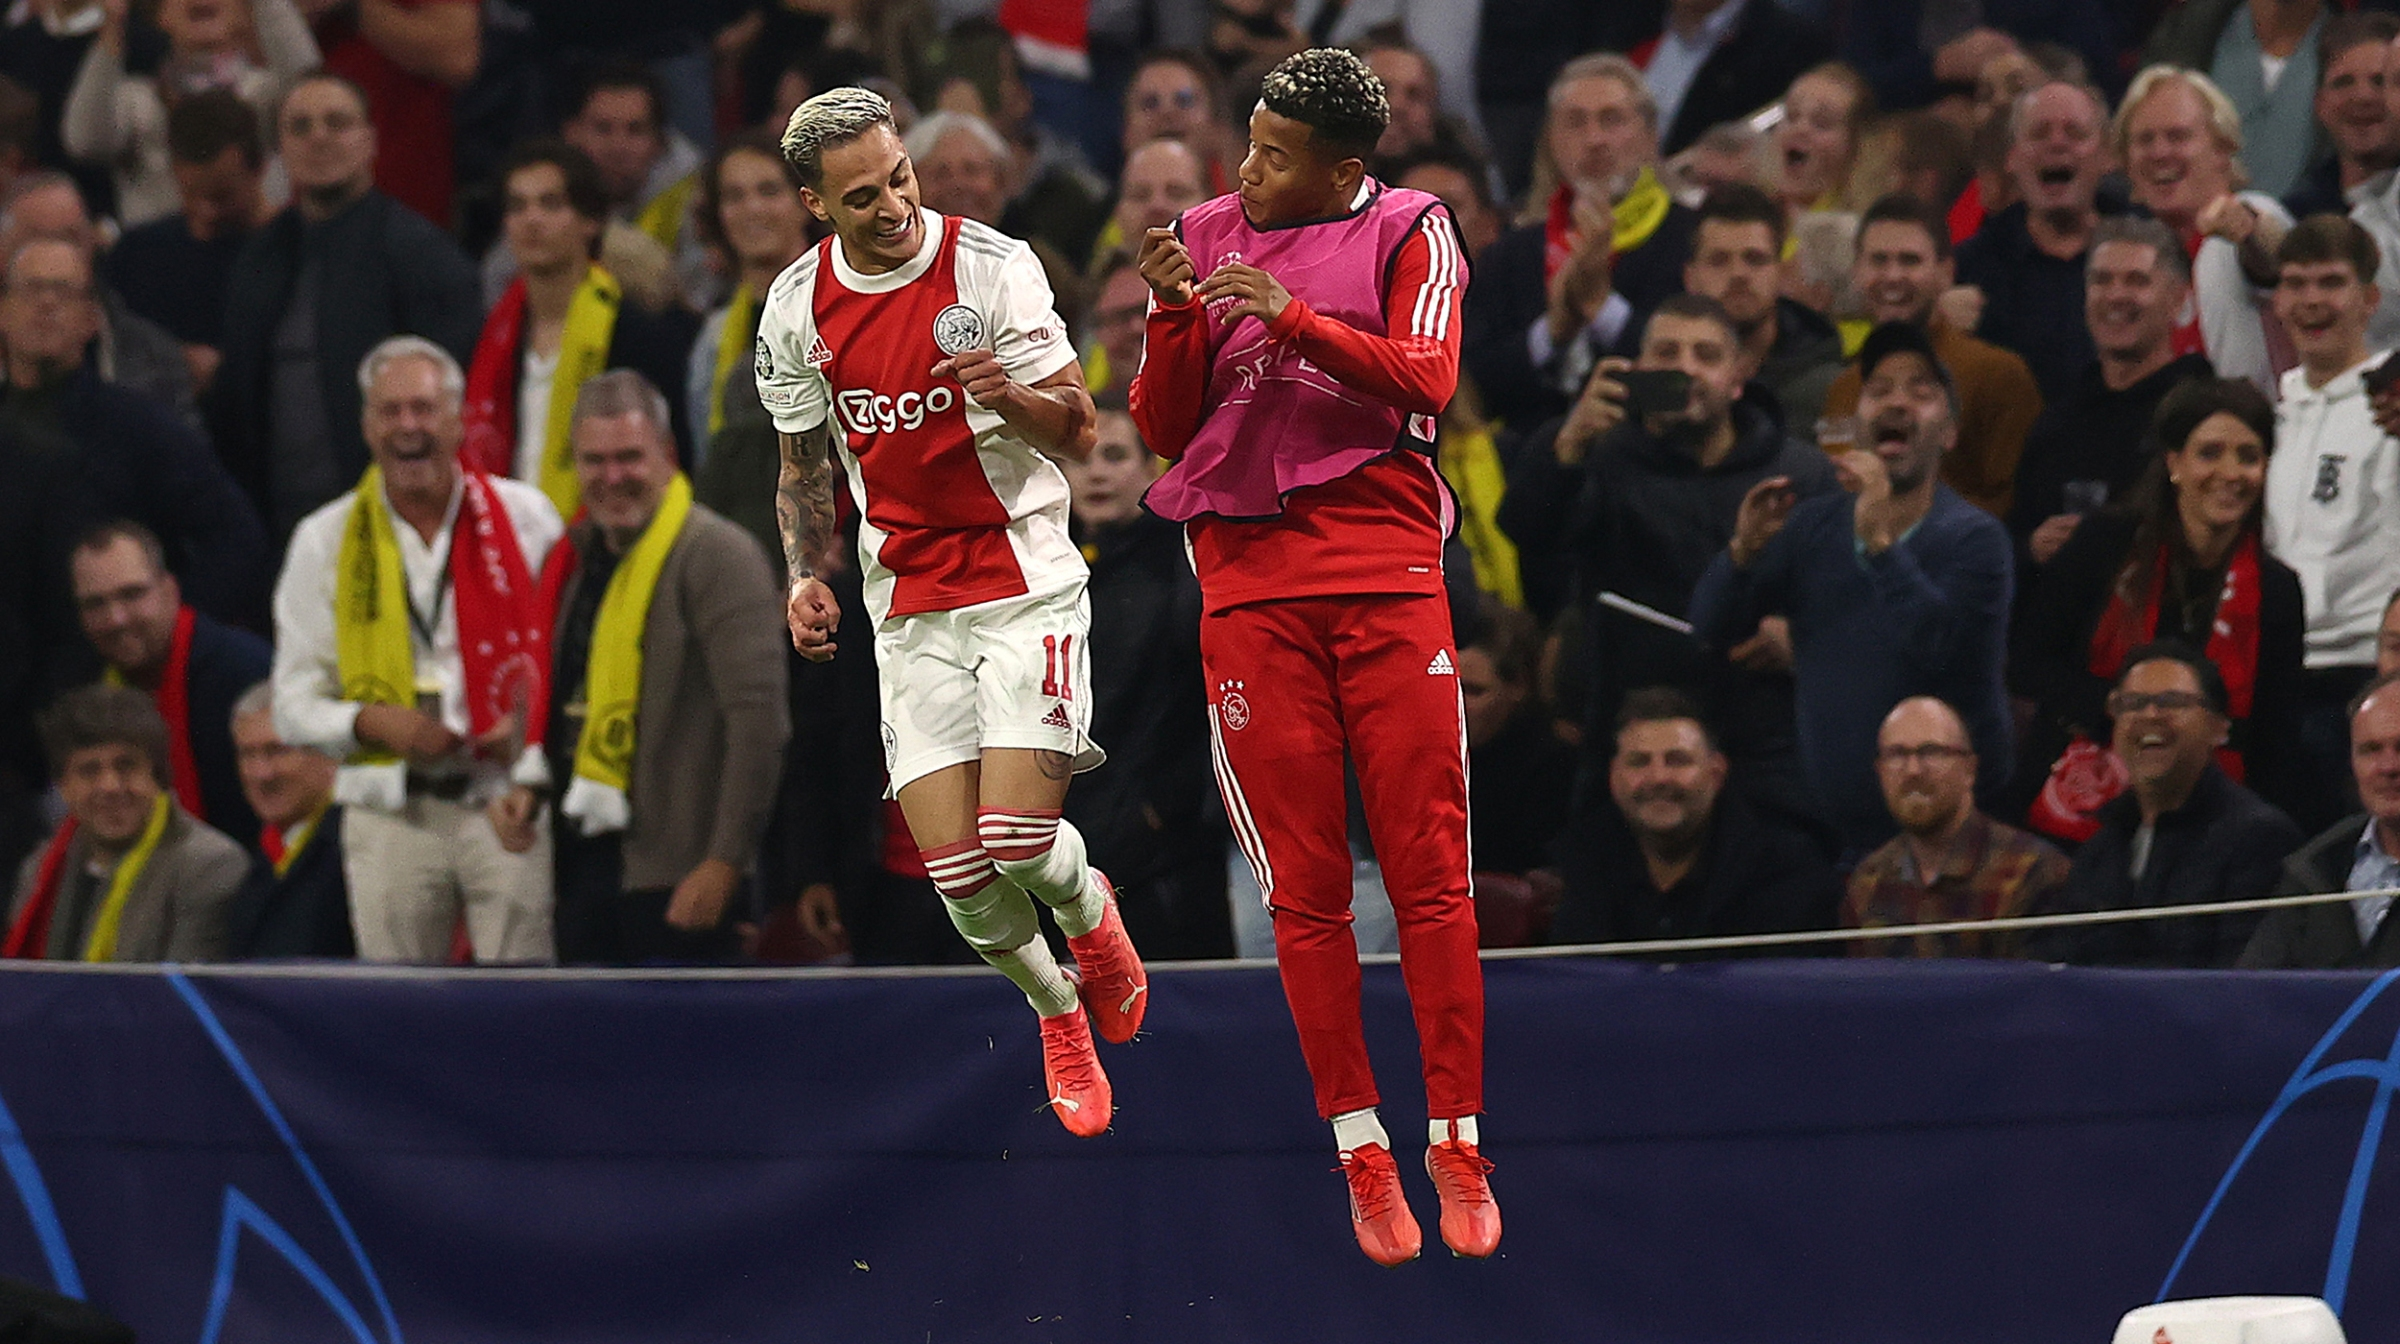 Antony of Ajax celebrates with David Neres after scoring their side's third goal during the UEFA Champions League group C match between AFC Ajax and Borussia Dortmund at Amsterdam Arena on October 19, 2021 in Amsterdam, Netherlands.